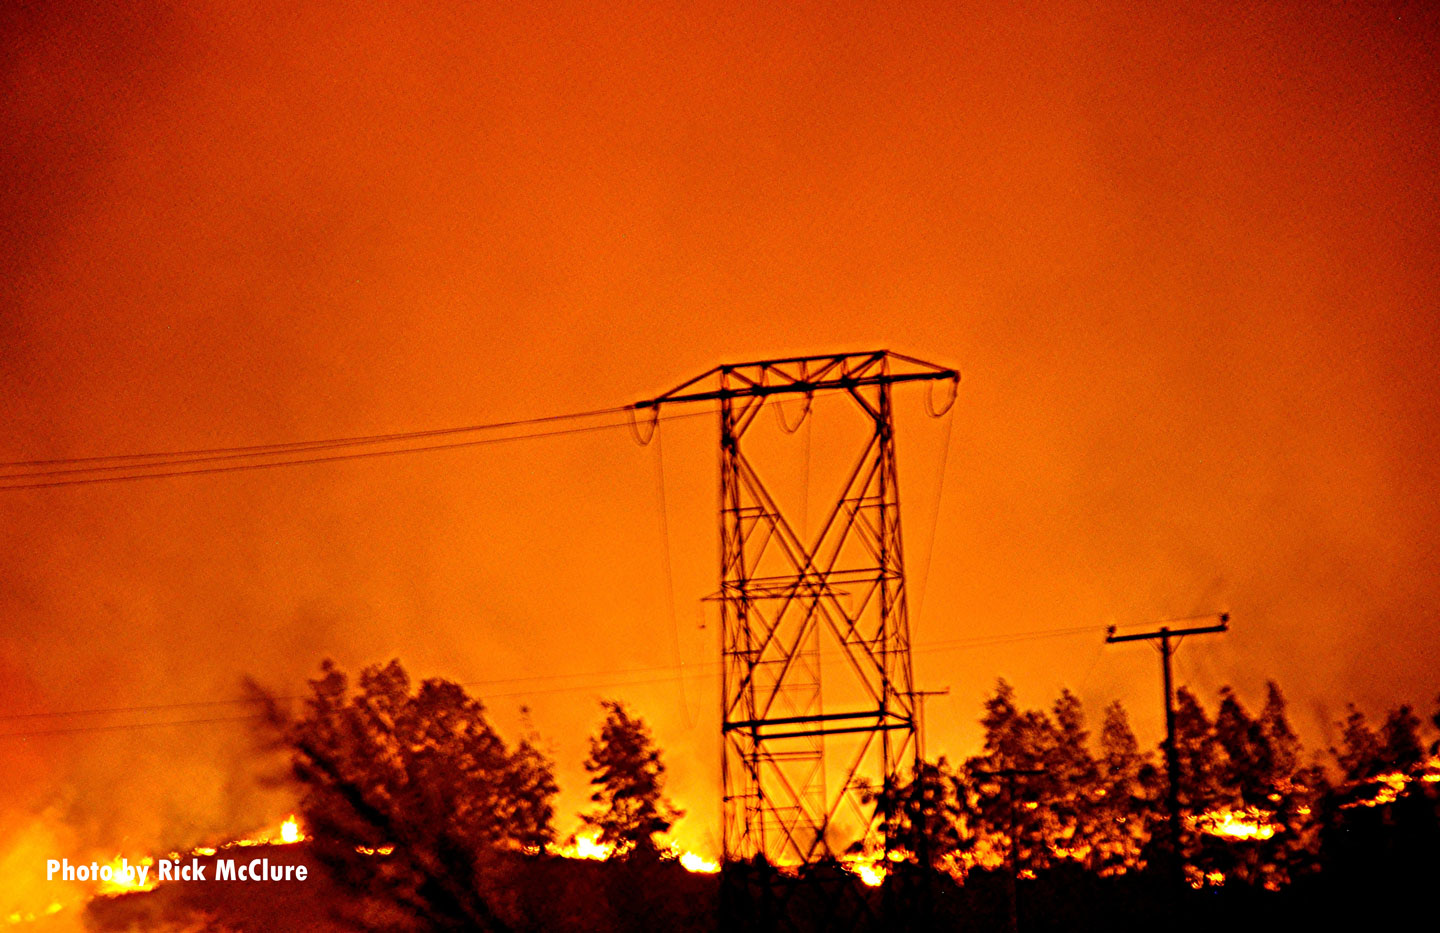 A view of power lines framed by flames of the Maria Fire in Southern California.